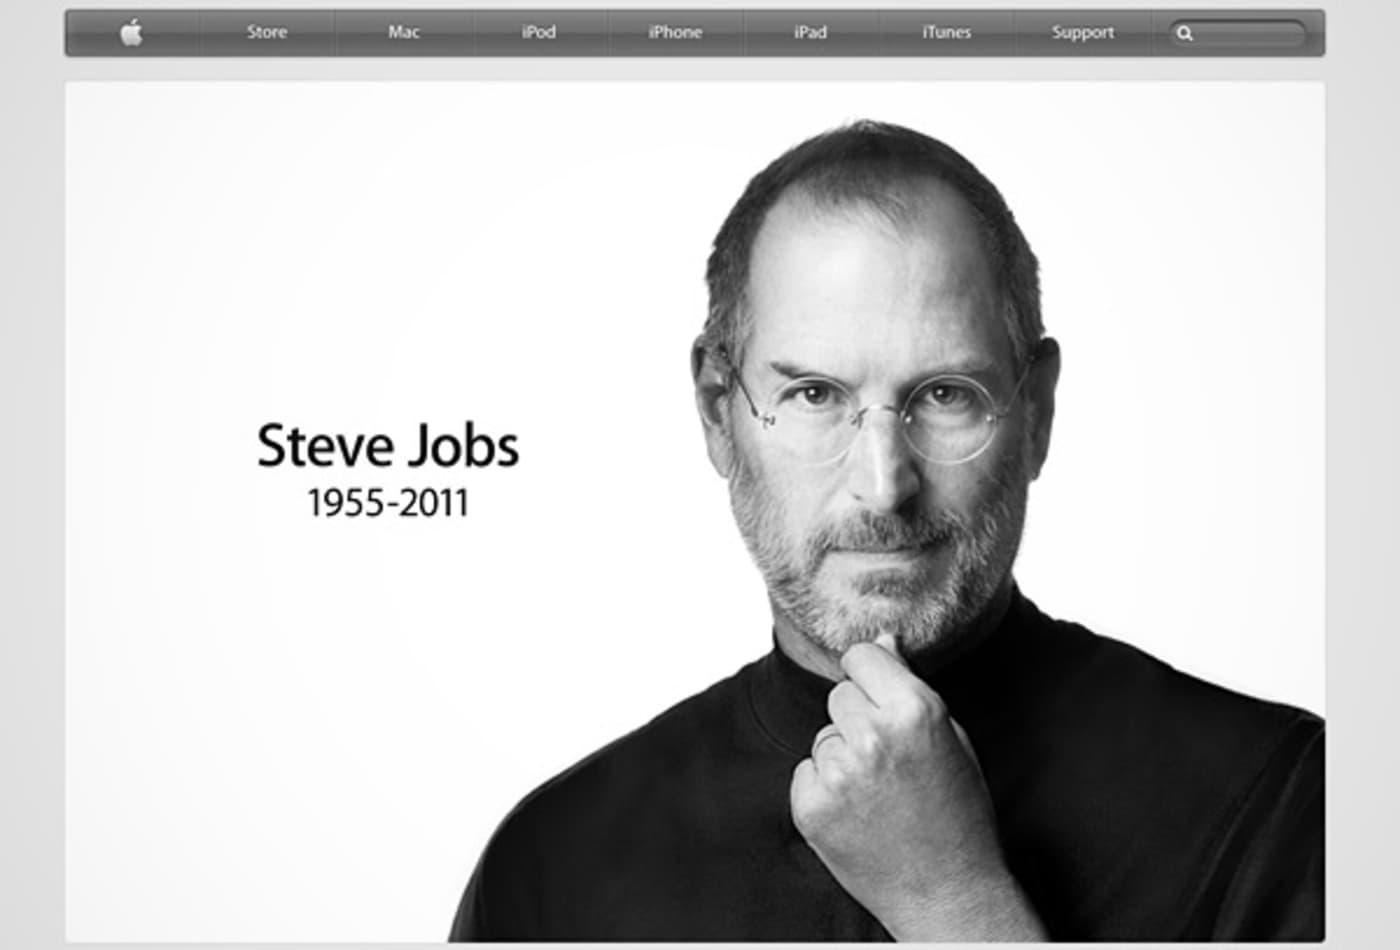 steve-jobs-passed-away-remembering-cnbc-4.jpg